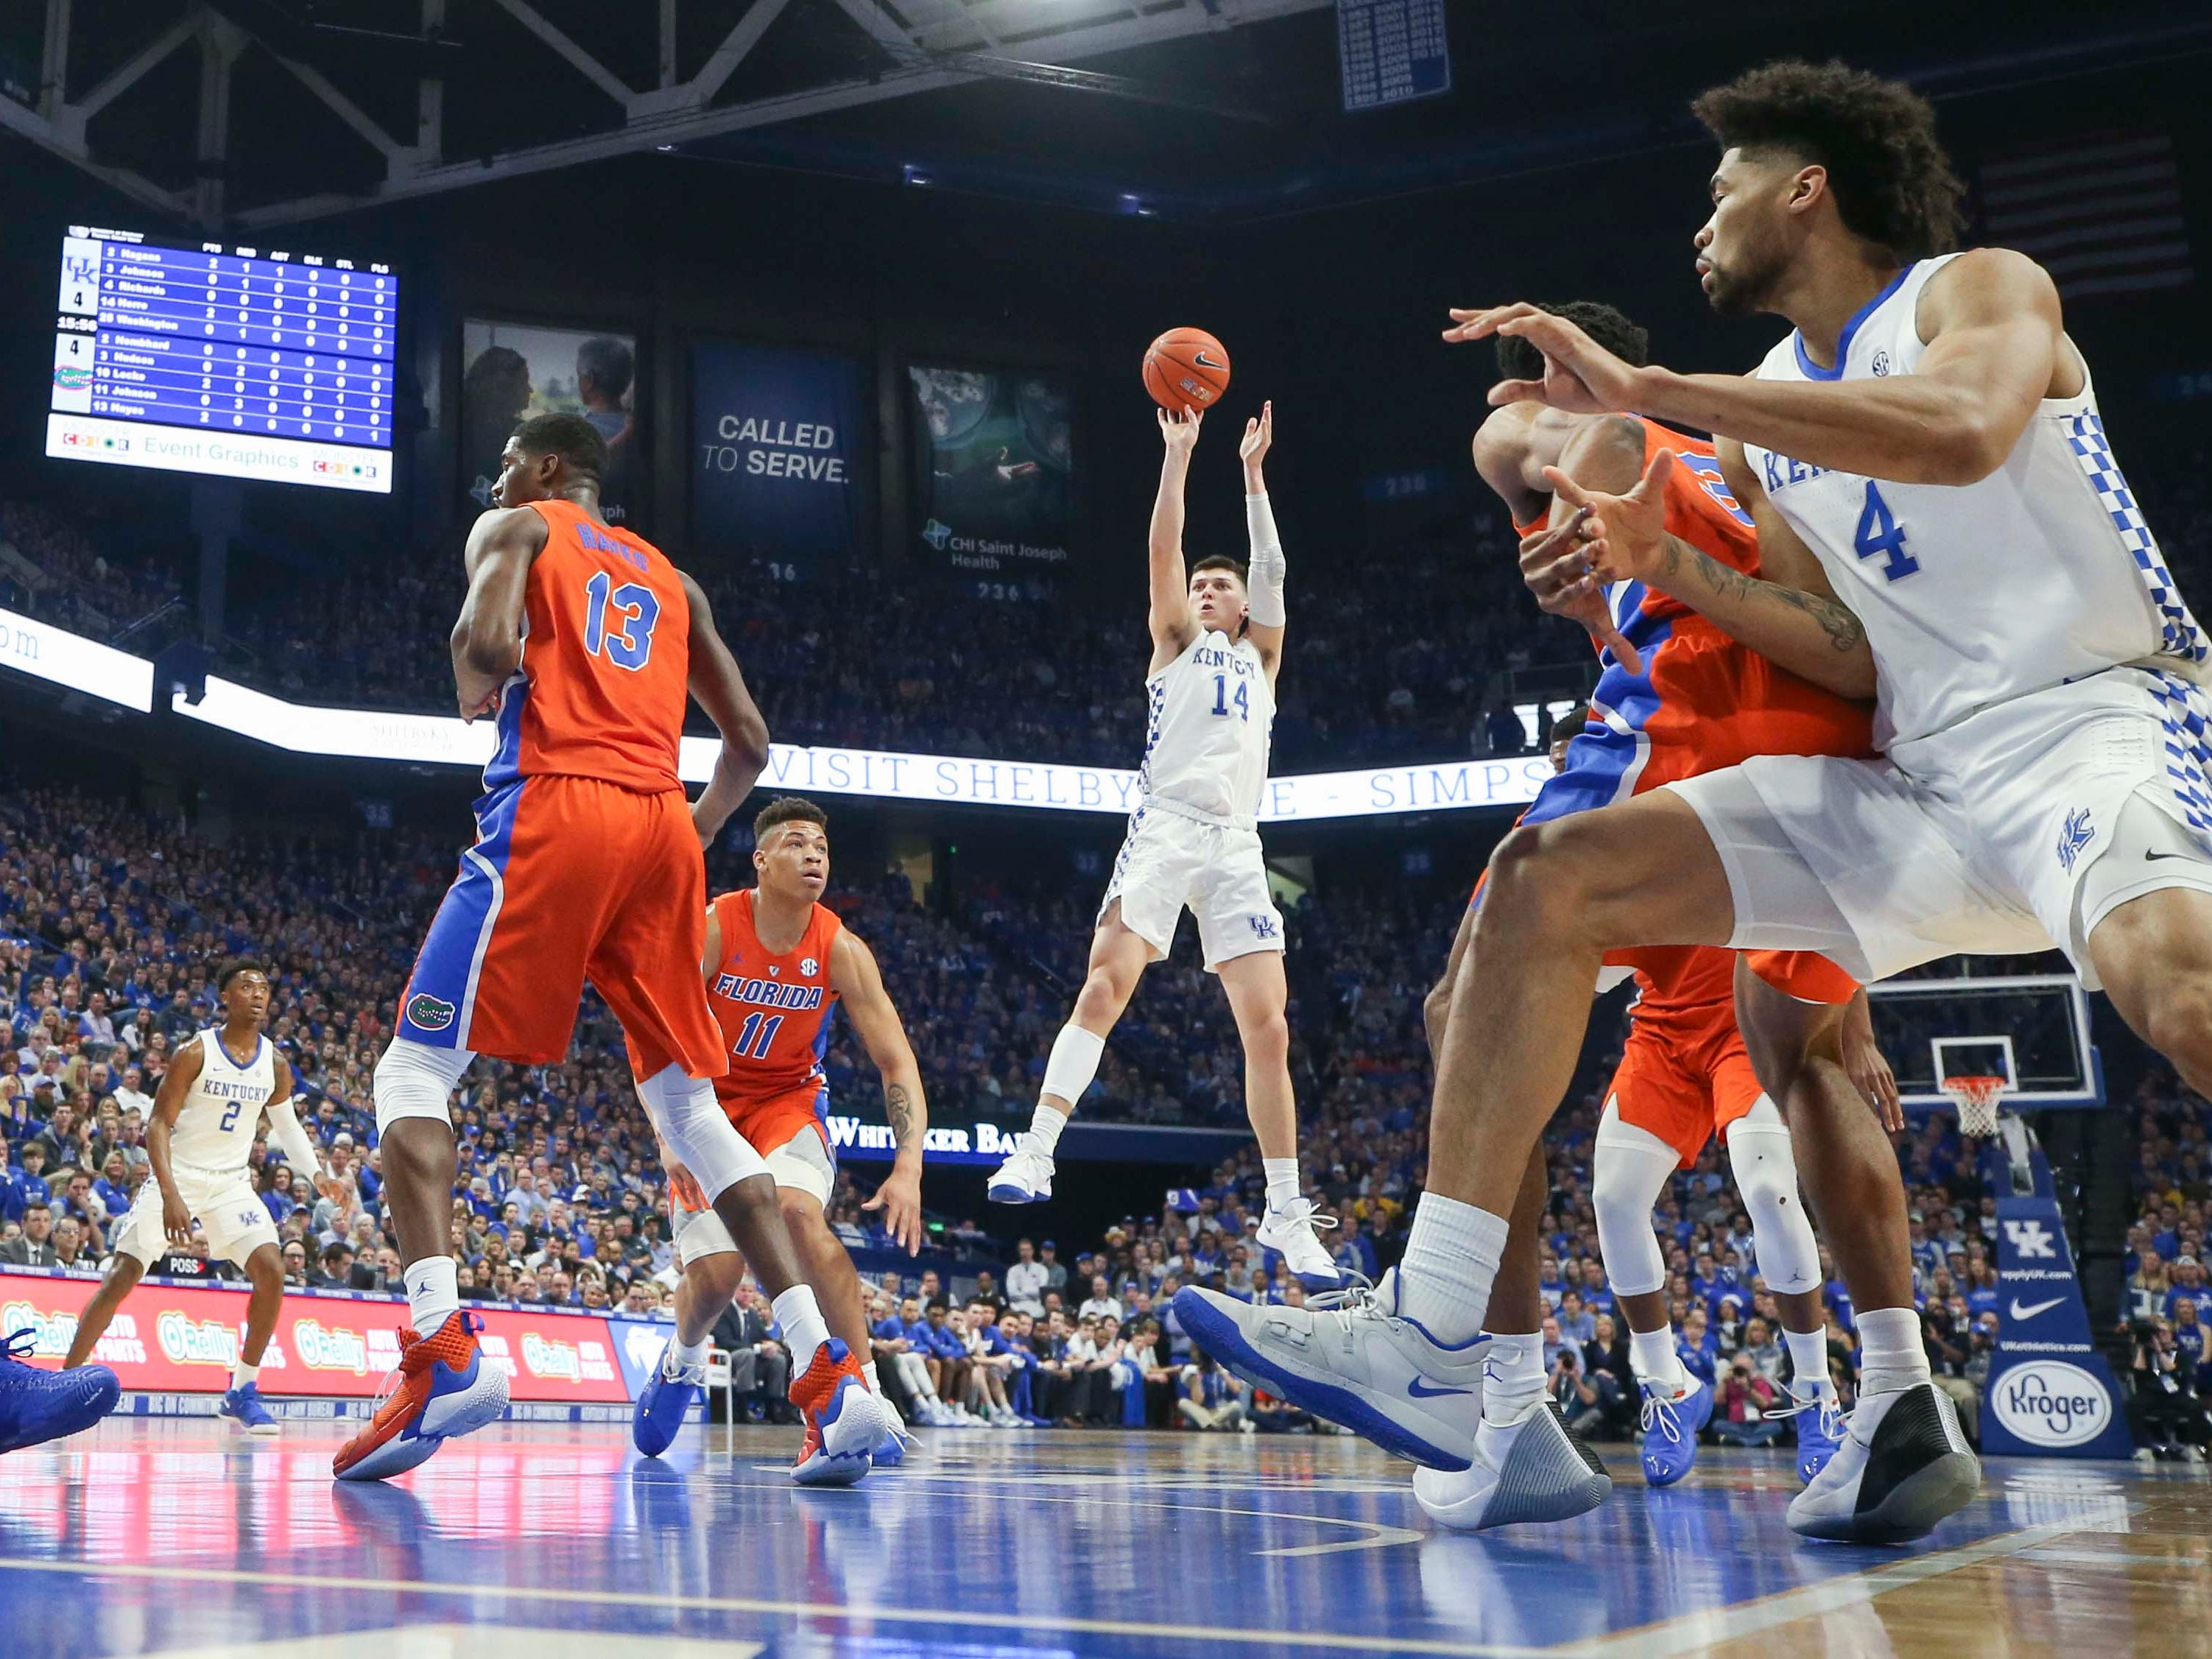 Kentucky's Tyler Herro scored 16 points with six rebounds against Florida. Wildcats won, 66-57.  March 9, 2019